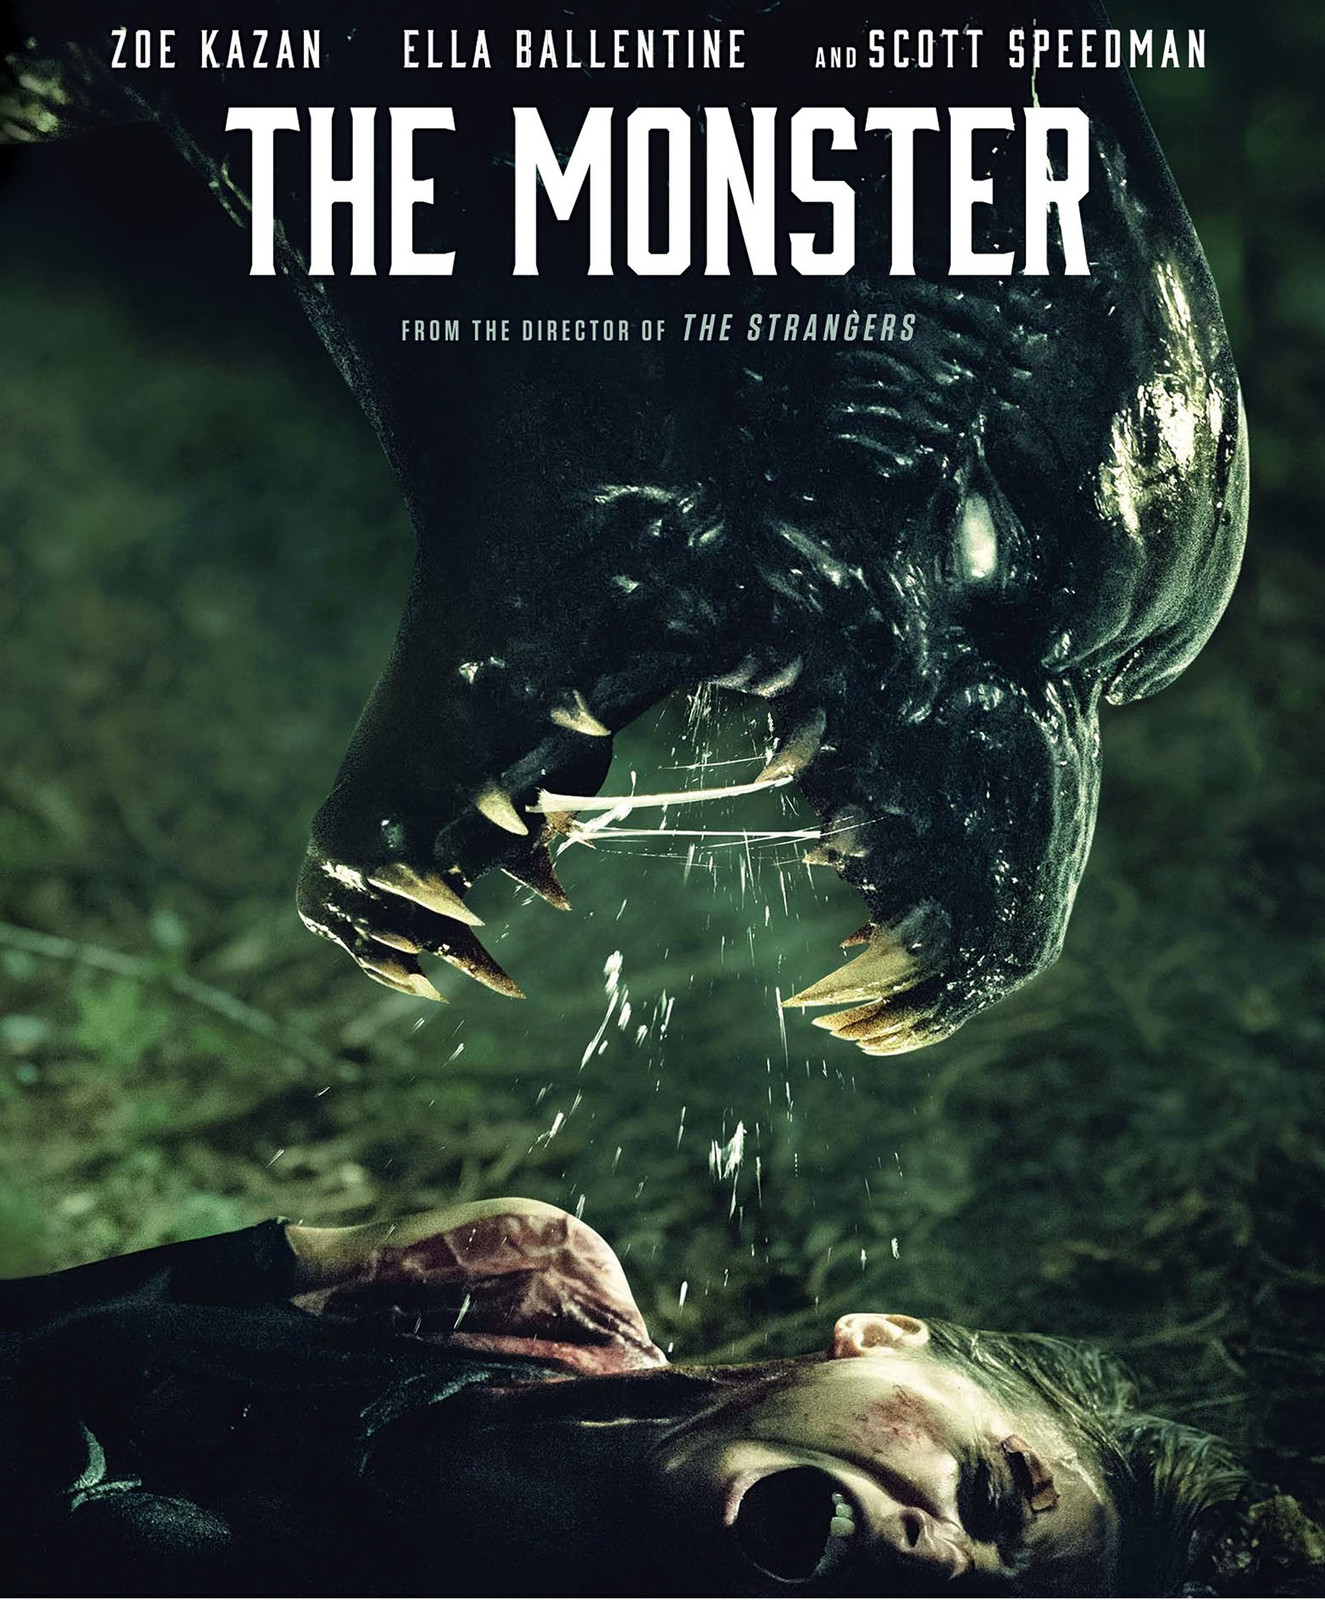 THE MONSTER  : Movie  Concept design for the MONSTER from the film, plus some promo images.